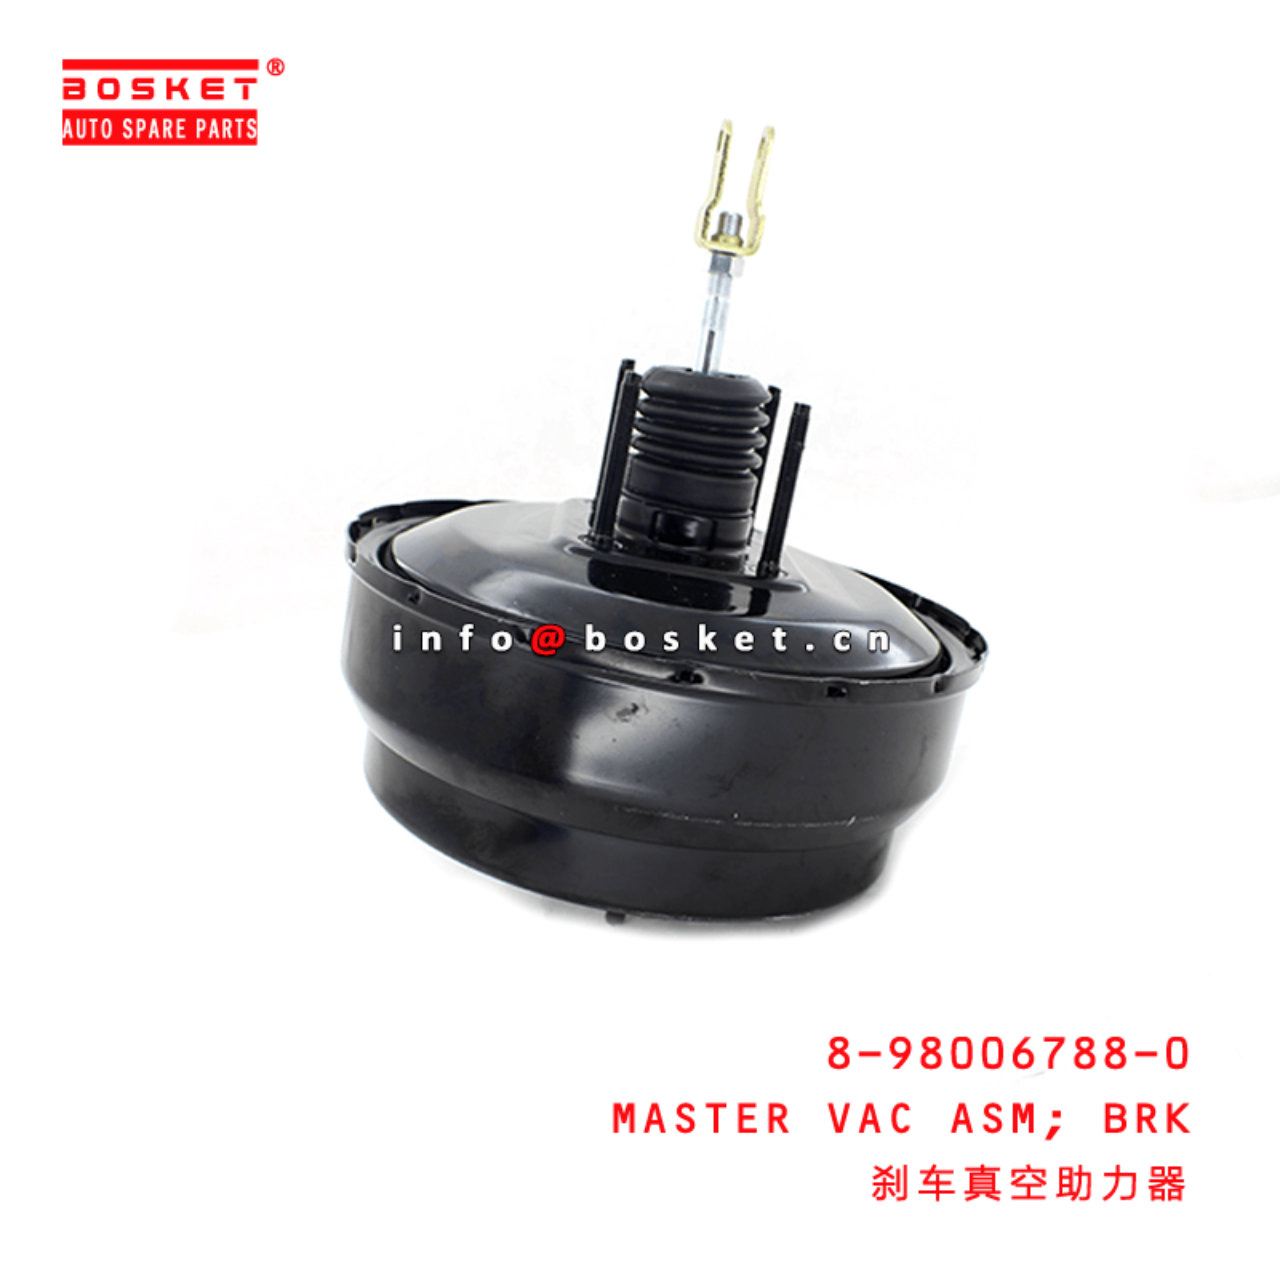 8-98006788-0 Brake Master Vac Assembly 8980067880 Suitable for ISUZU D-MAX 2007